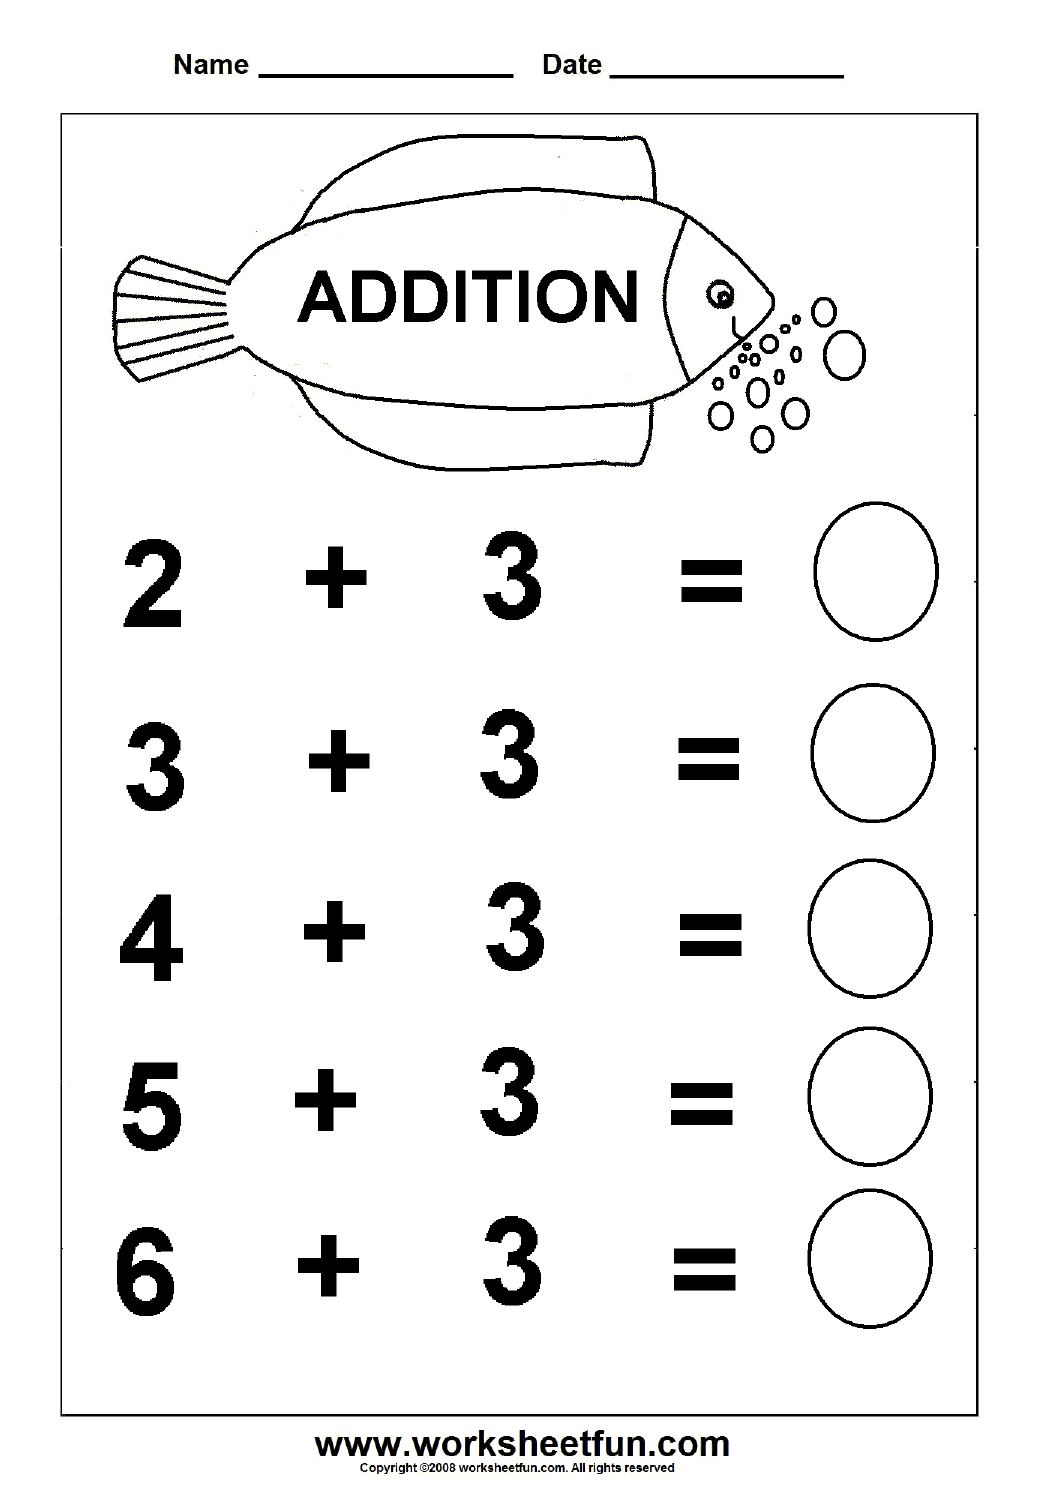 Beginner Addition – 6 Kindergarten Addition Worksheets / Free | Free Printable Math Addition Worksheets For Kindergarten